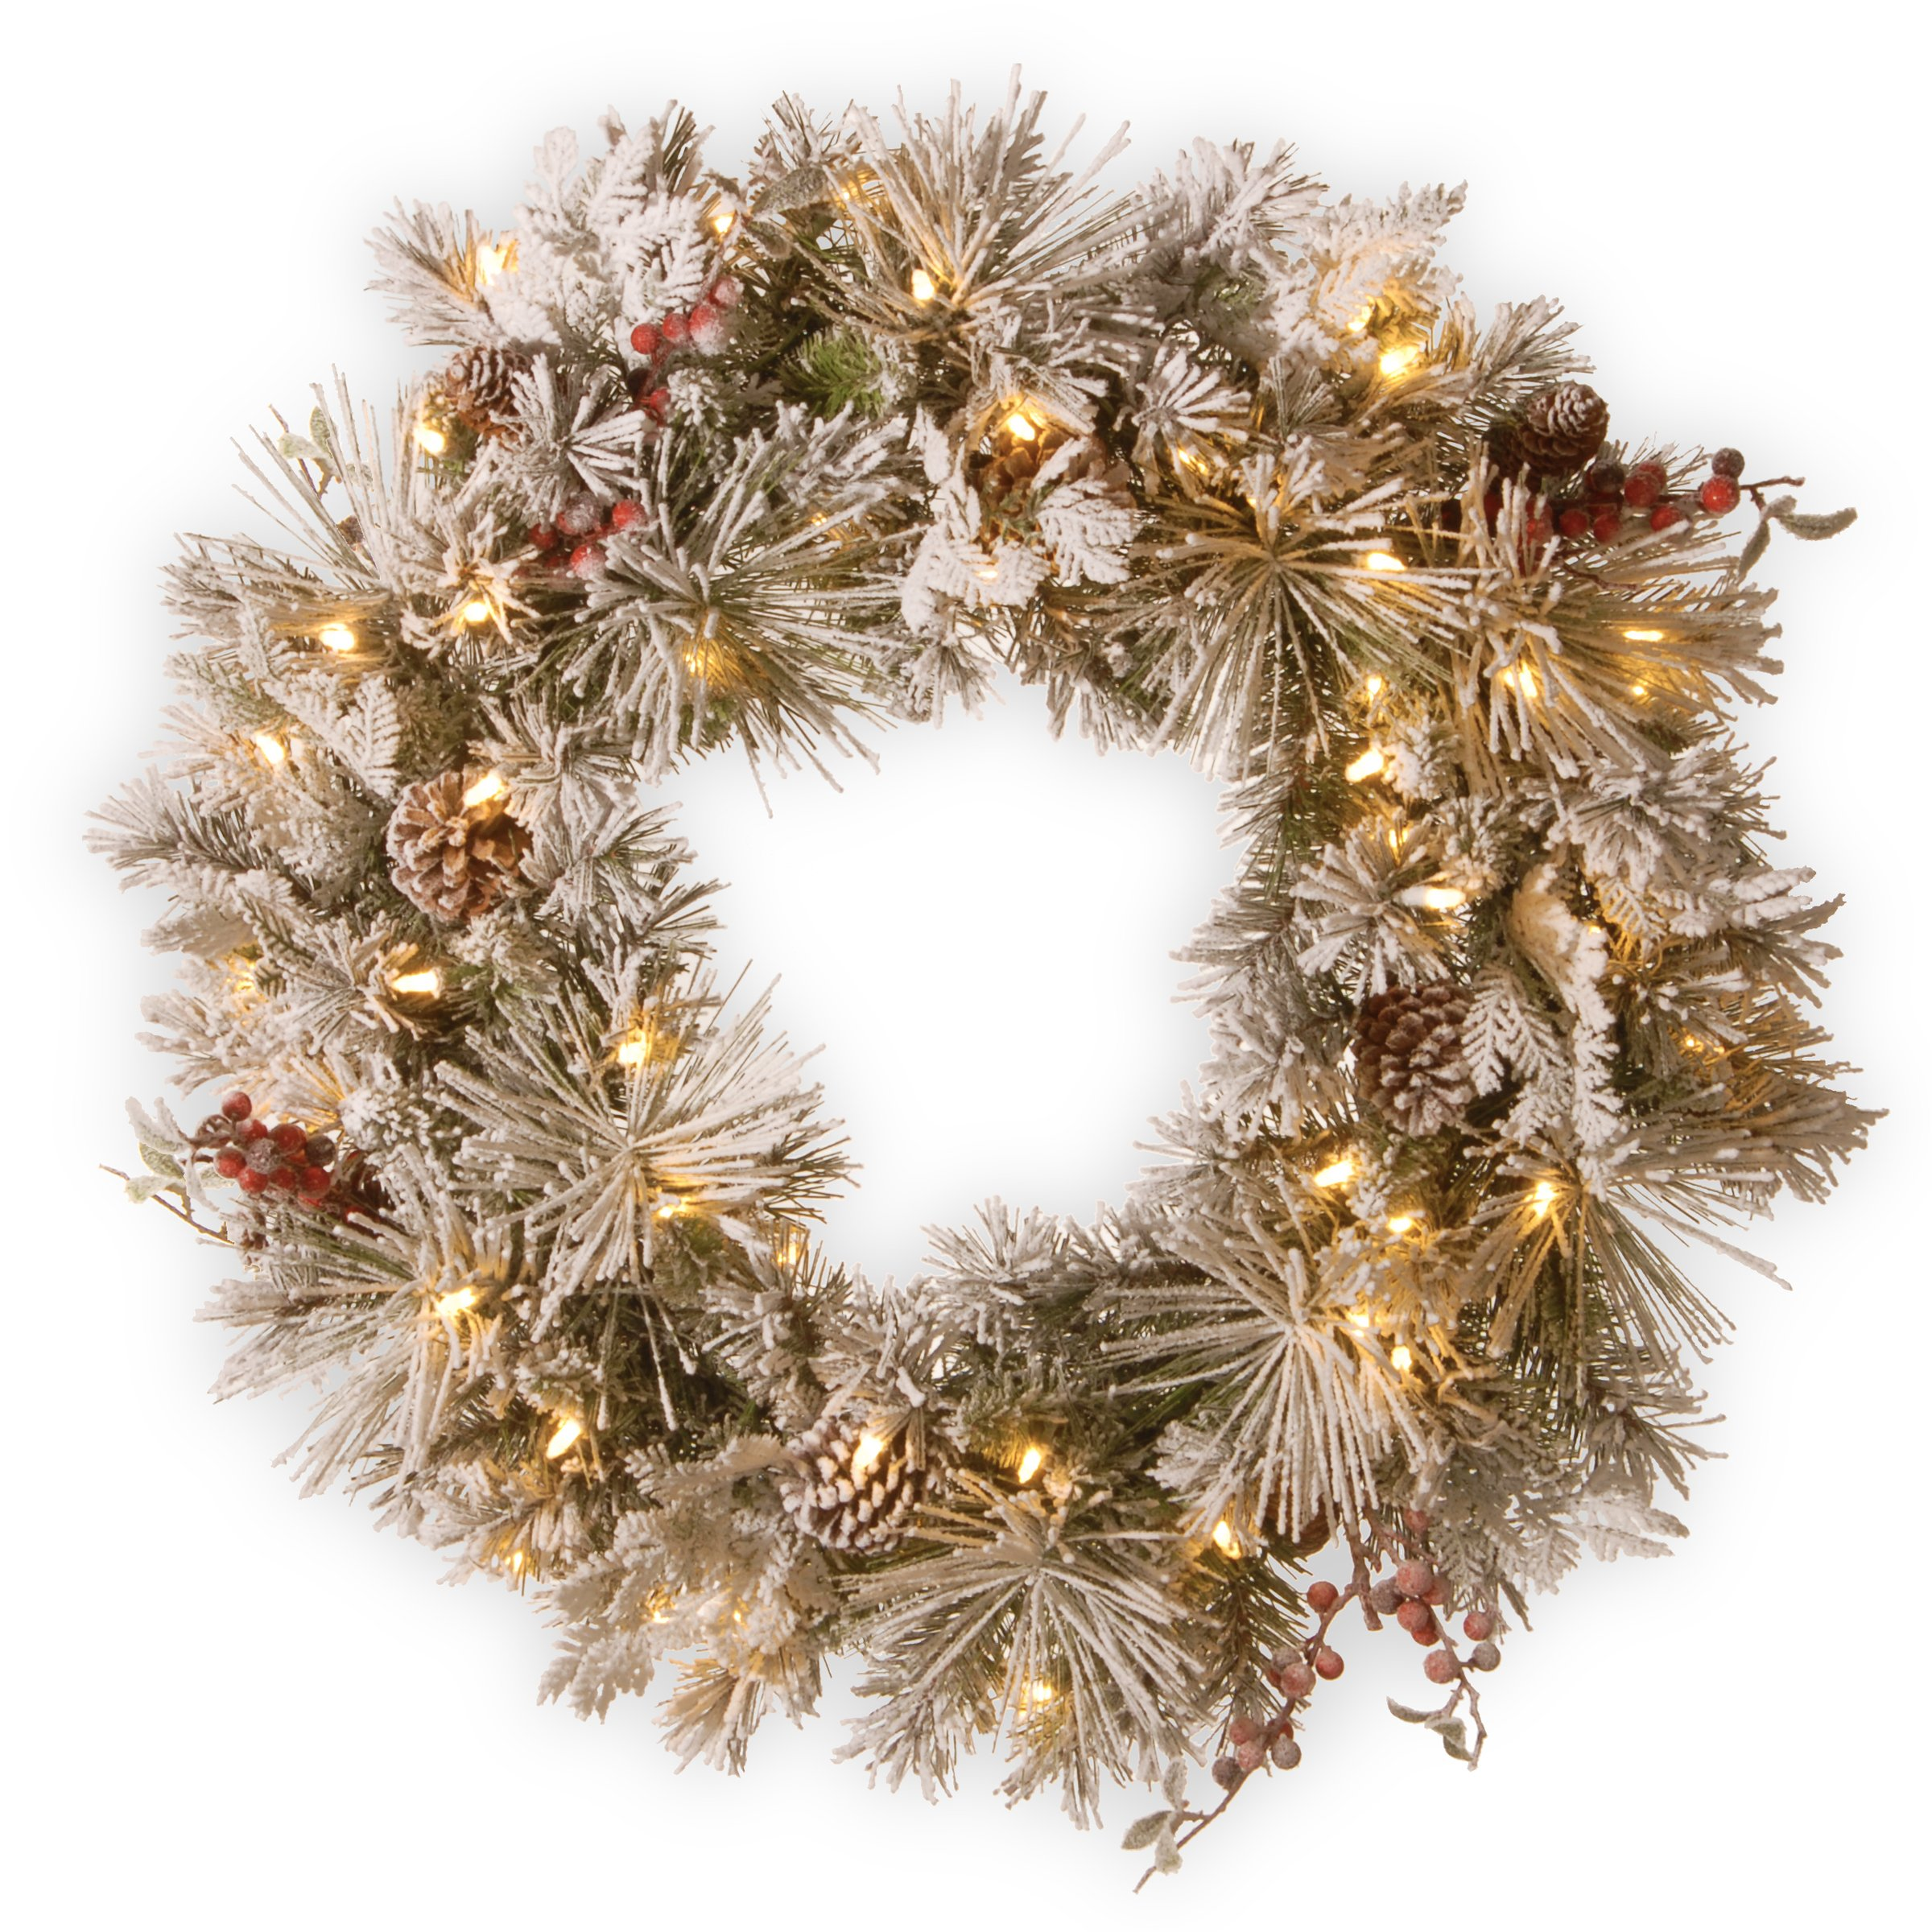 National Tree 30 Inch Snowy Bedford Pine Wreath with Cedar Leaves, Berries, Mixed Cones and 70 Battery Operated Warm White LED Lights with Timer (SBE1-308-30WBC1)